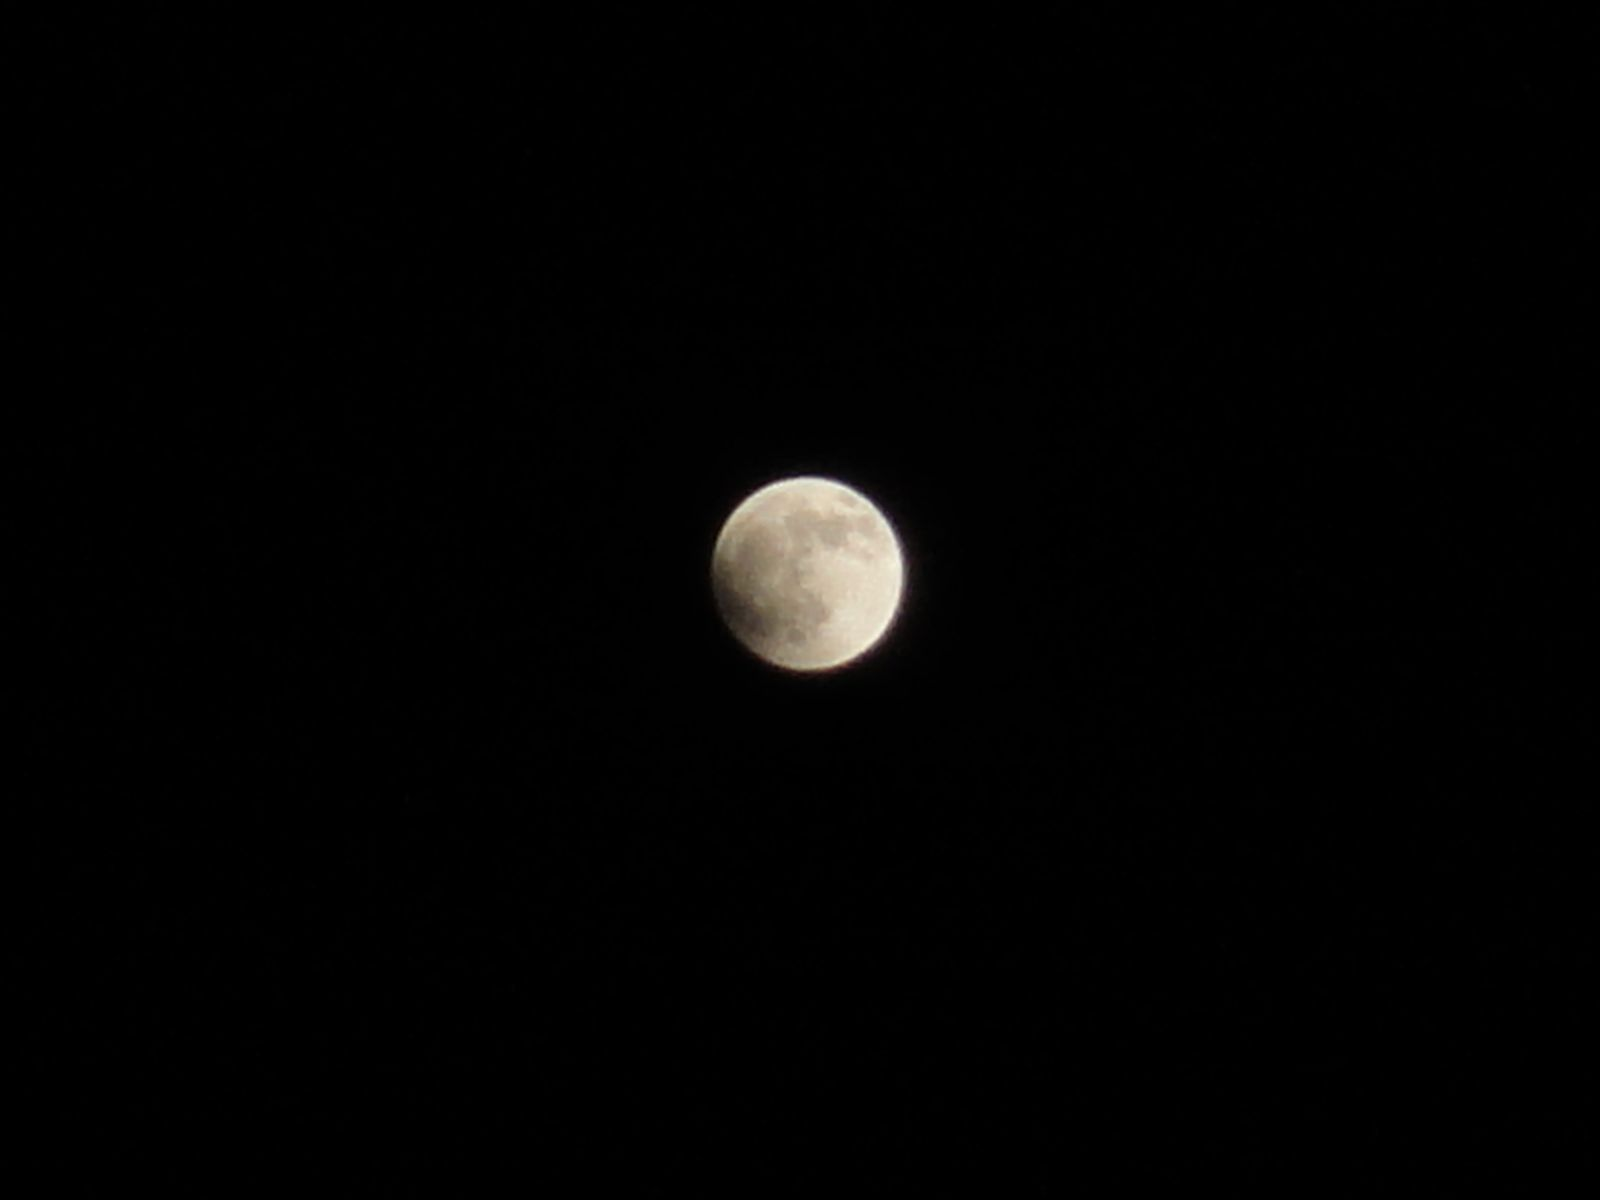 lunar_eclipse_003.jpg